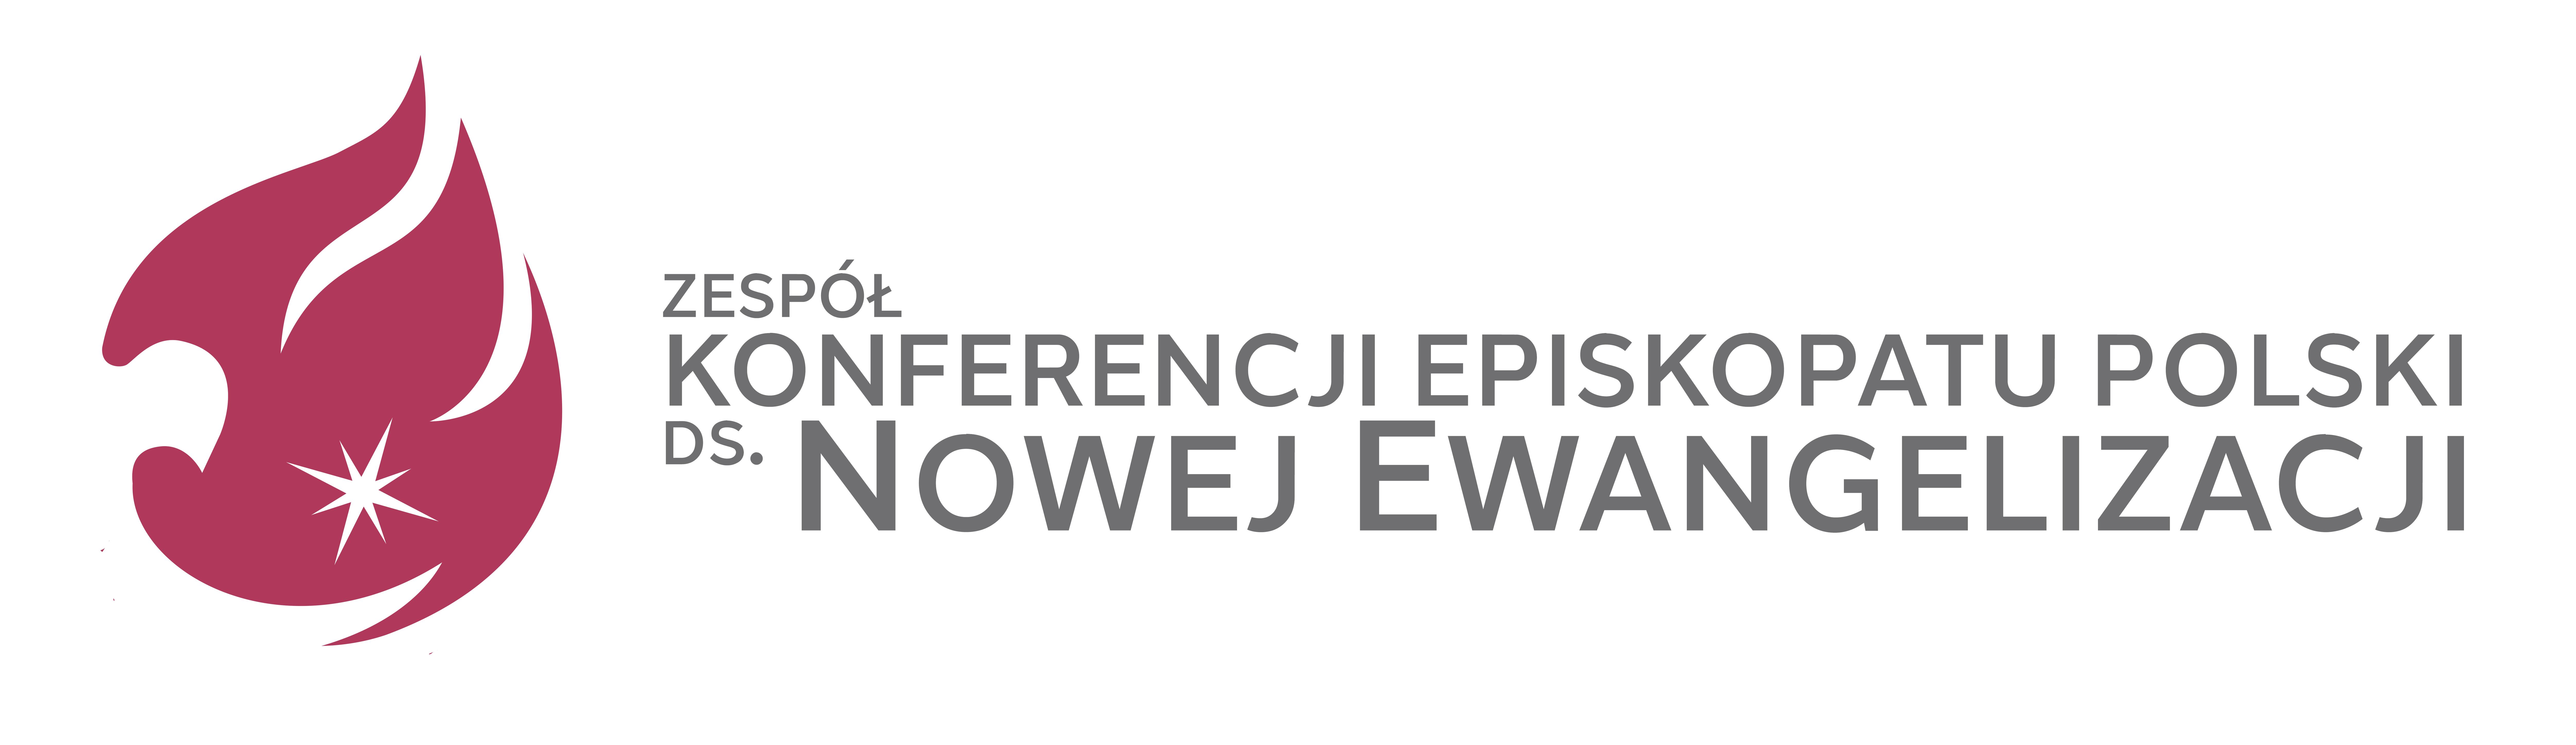 Zespół Konferencji Episkopatu Polski ds. Nowej Ewangelizacji